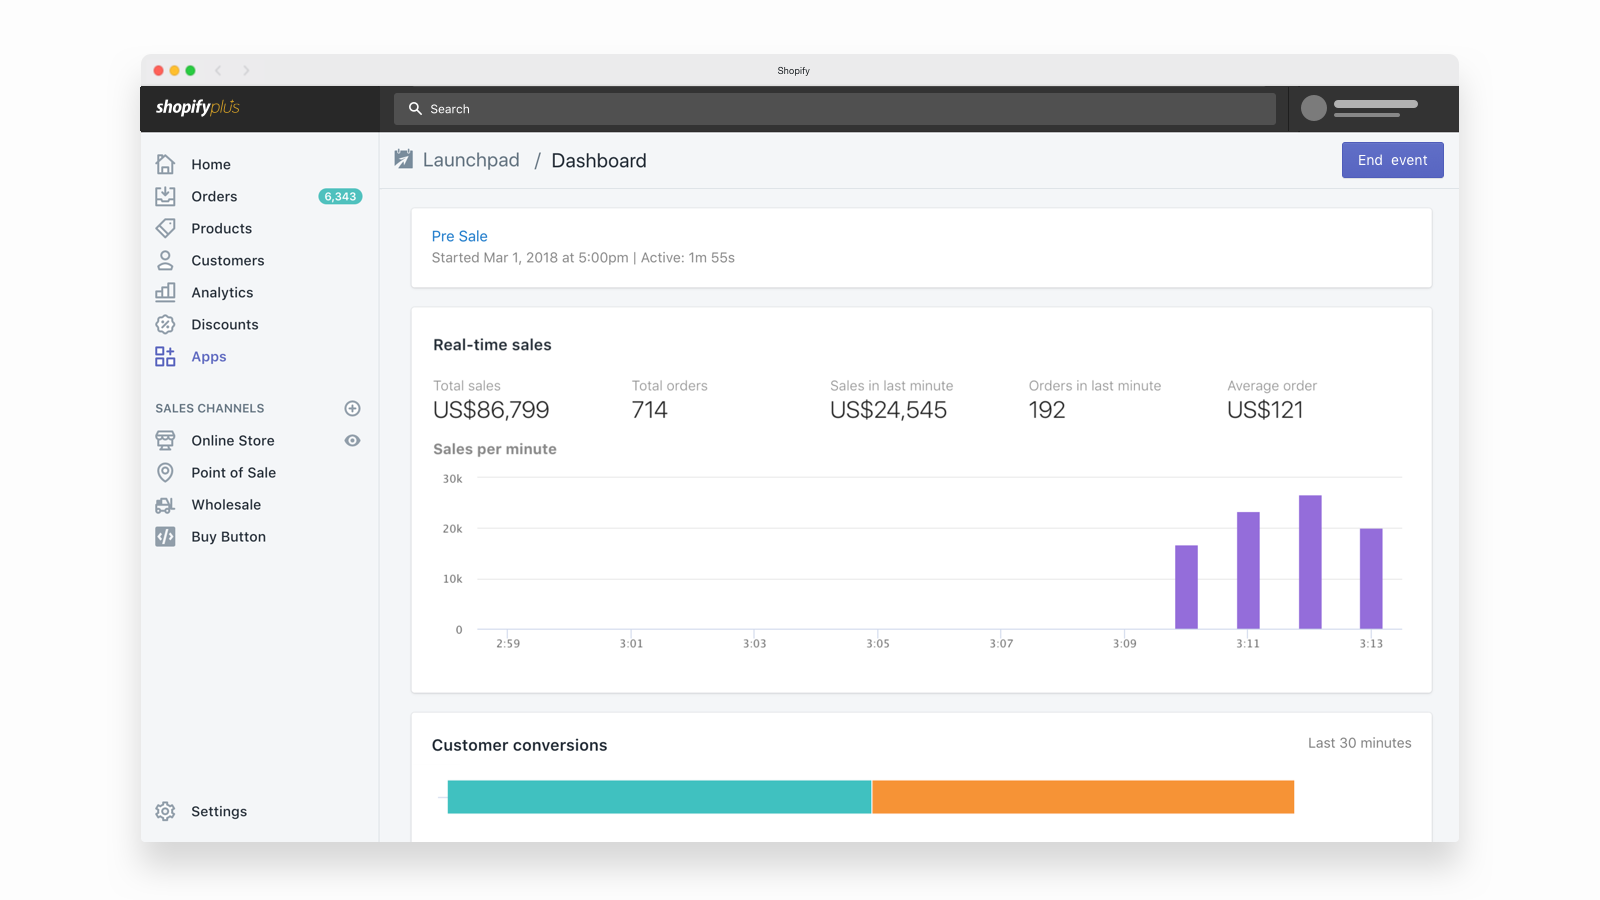 Track performance in real-time during events with the Shopify Plus Launchpad tool